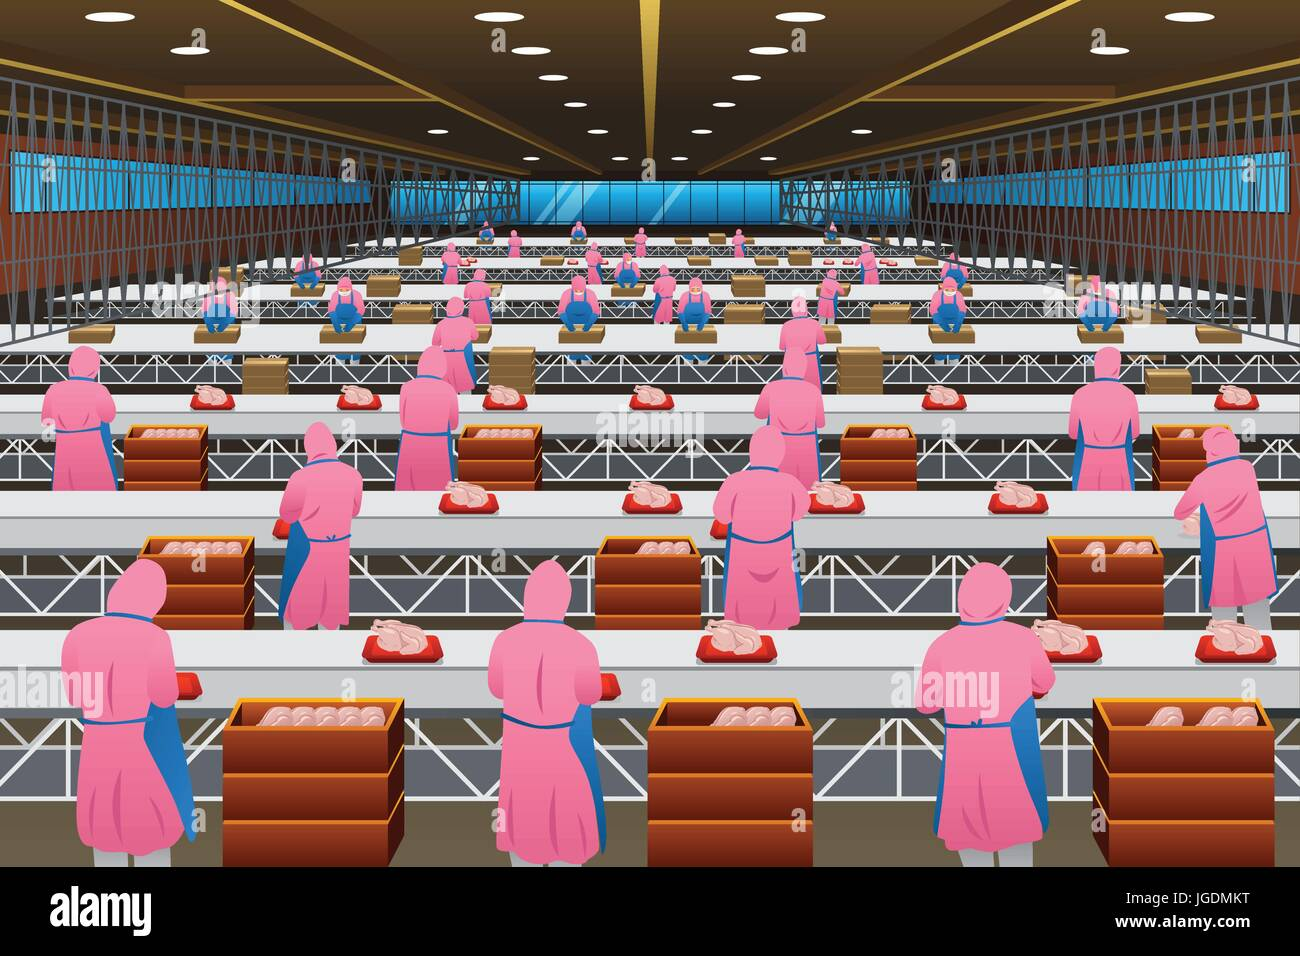 A vector illustration of Factory Workers Working in a Poultry Processing Plant - Stock Image